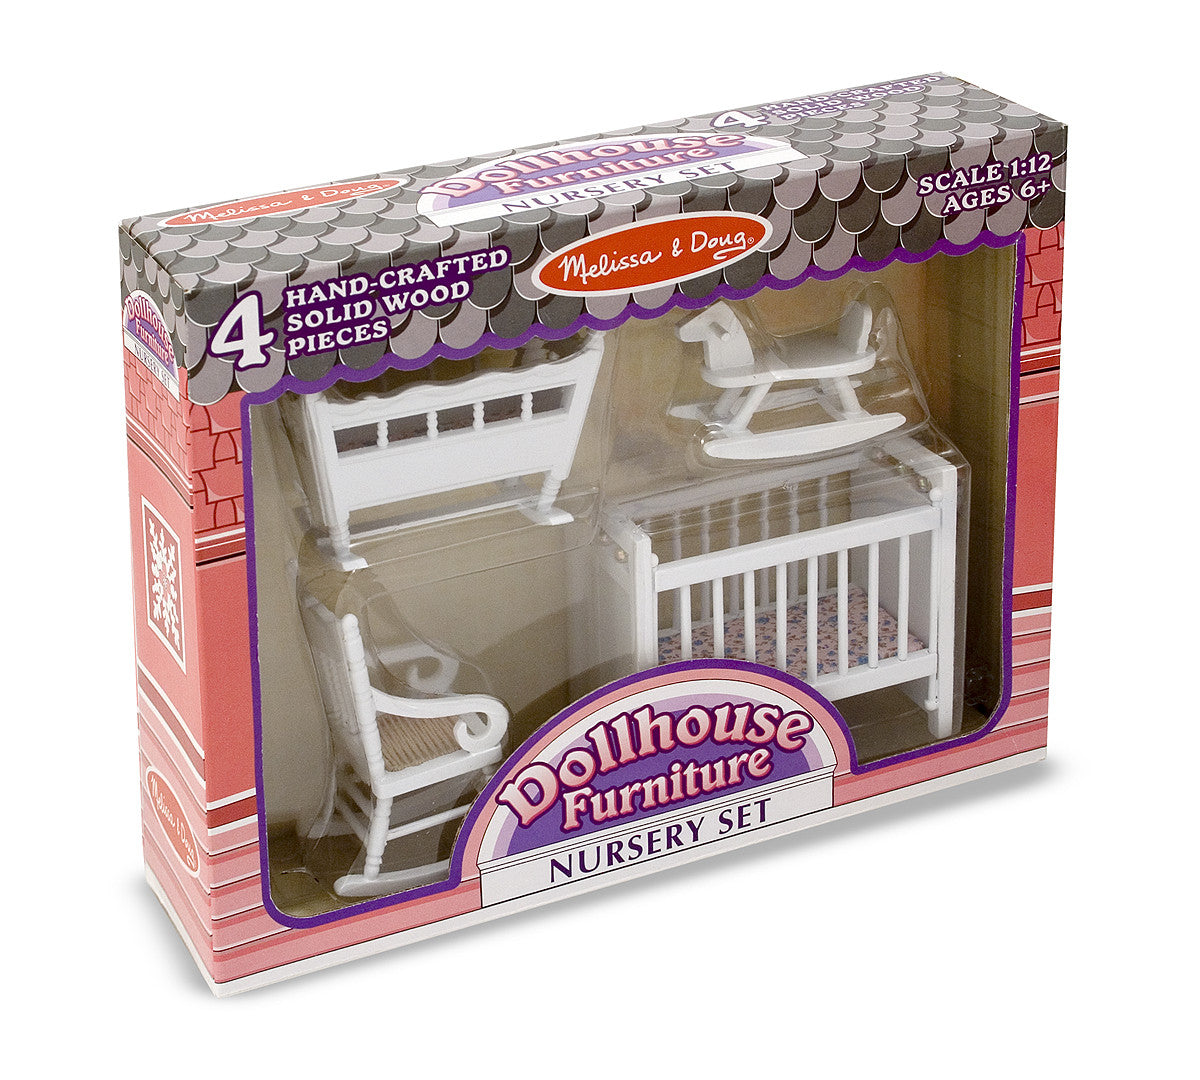 Melissa & Doug Nursery Furniture 2585